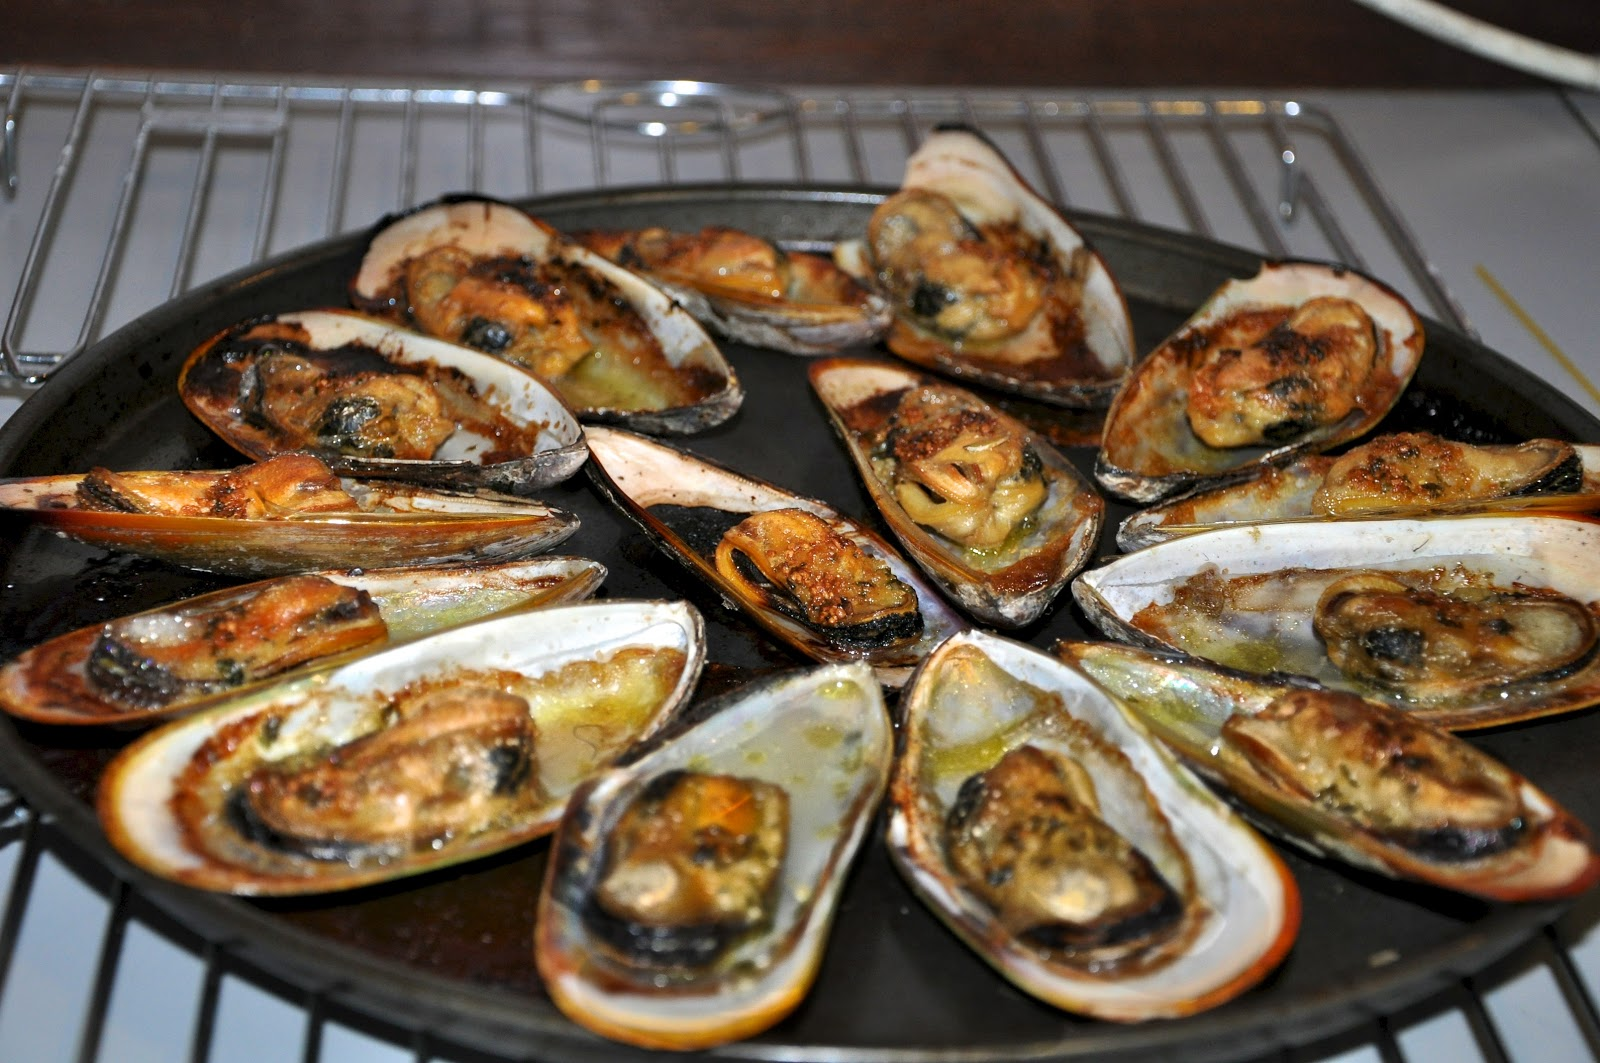 THE KITCHEN JOURNAL: Grilled mussels with garlic butter